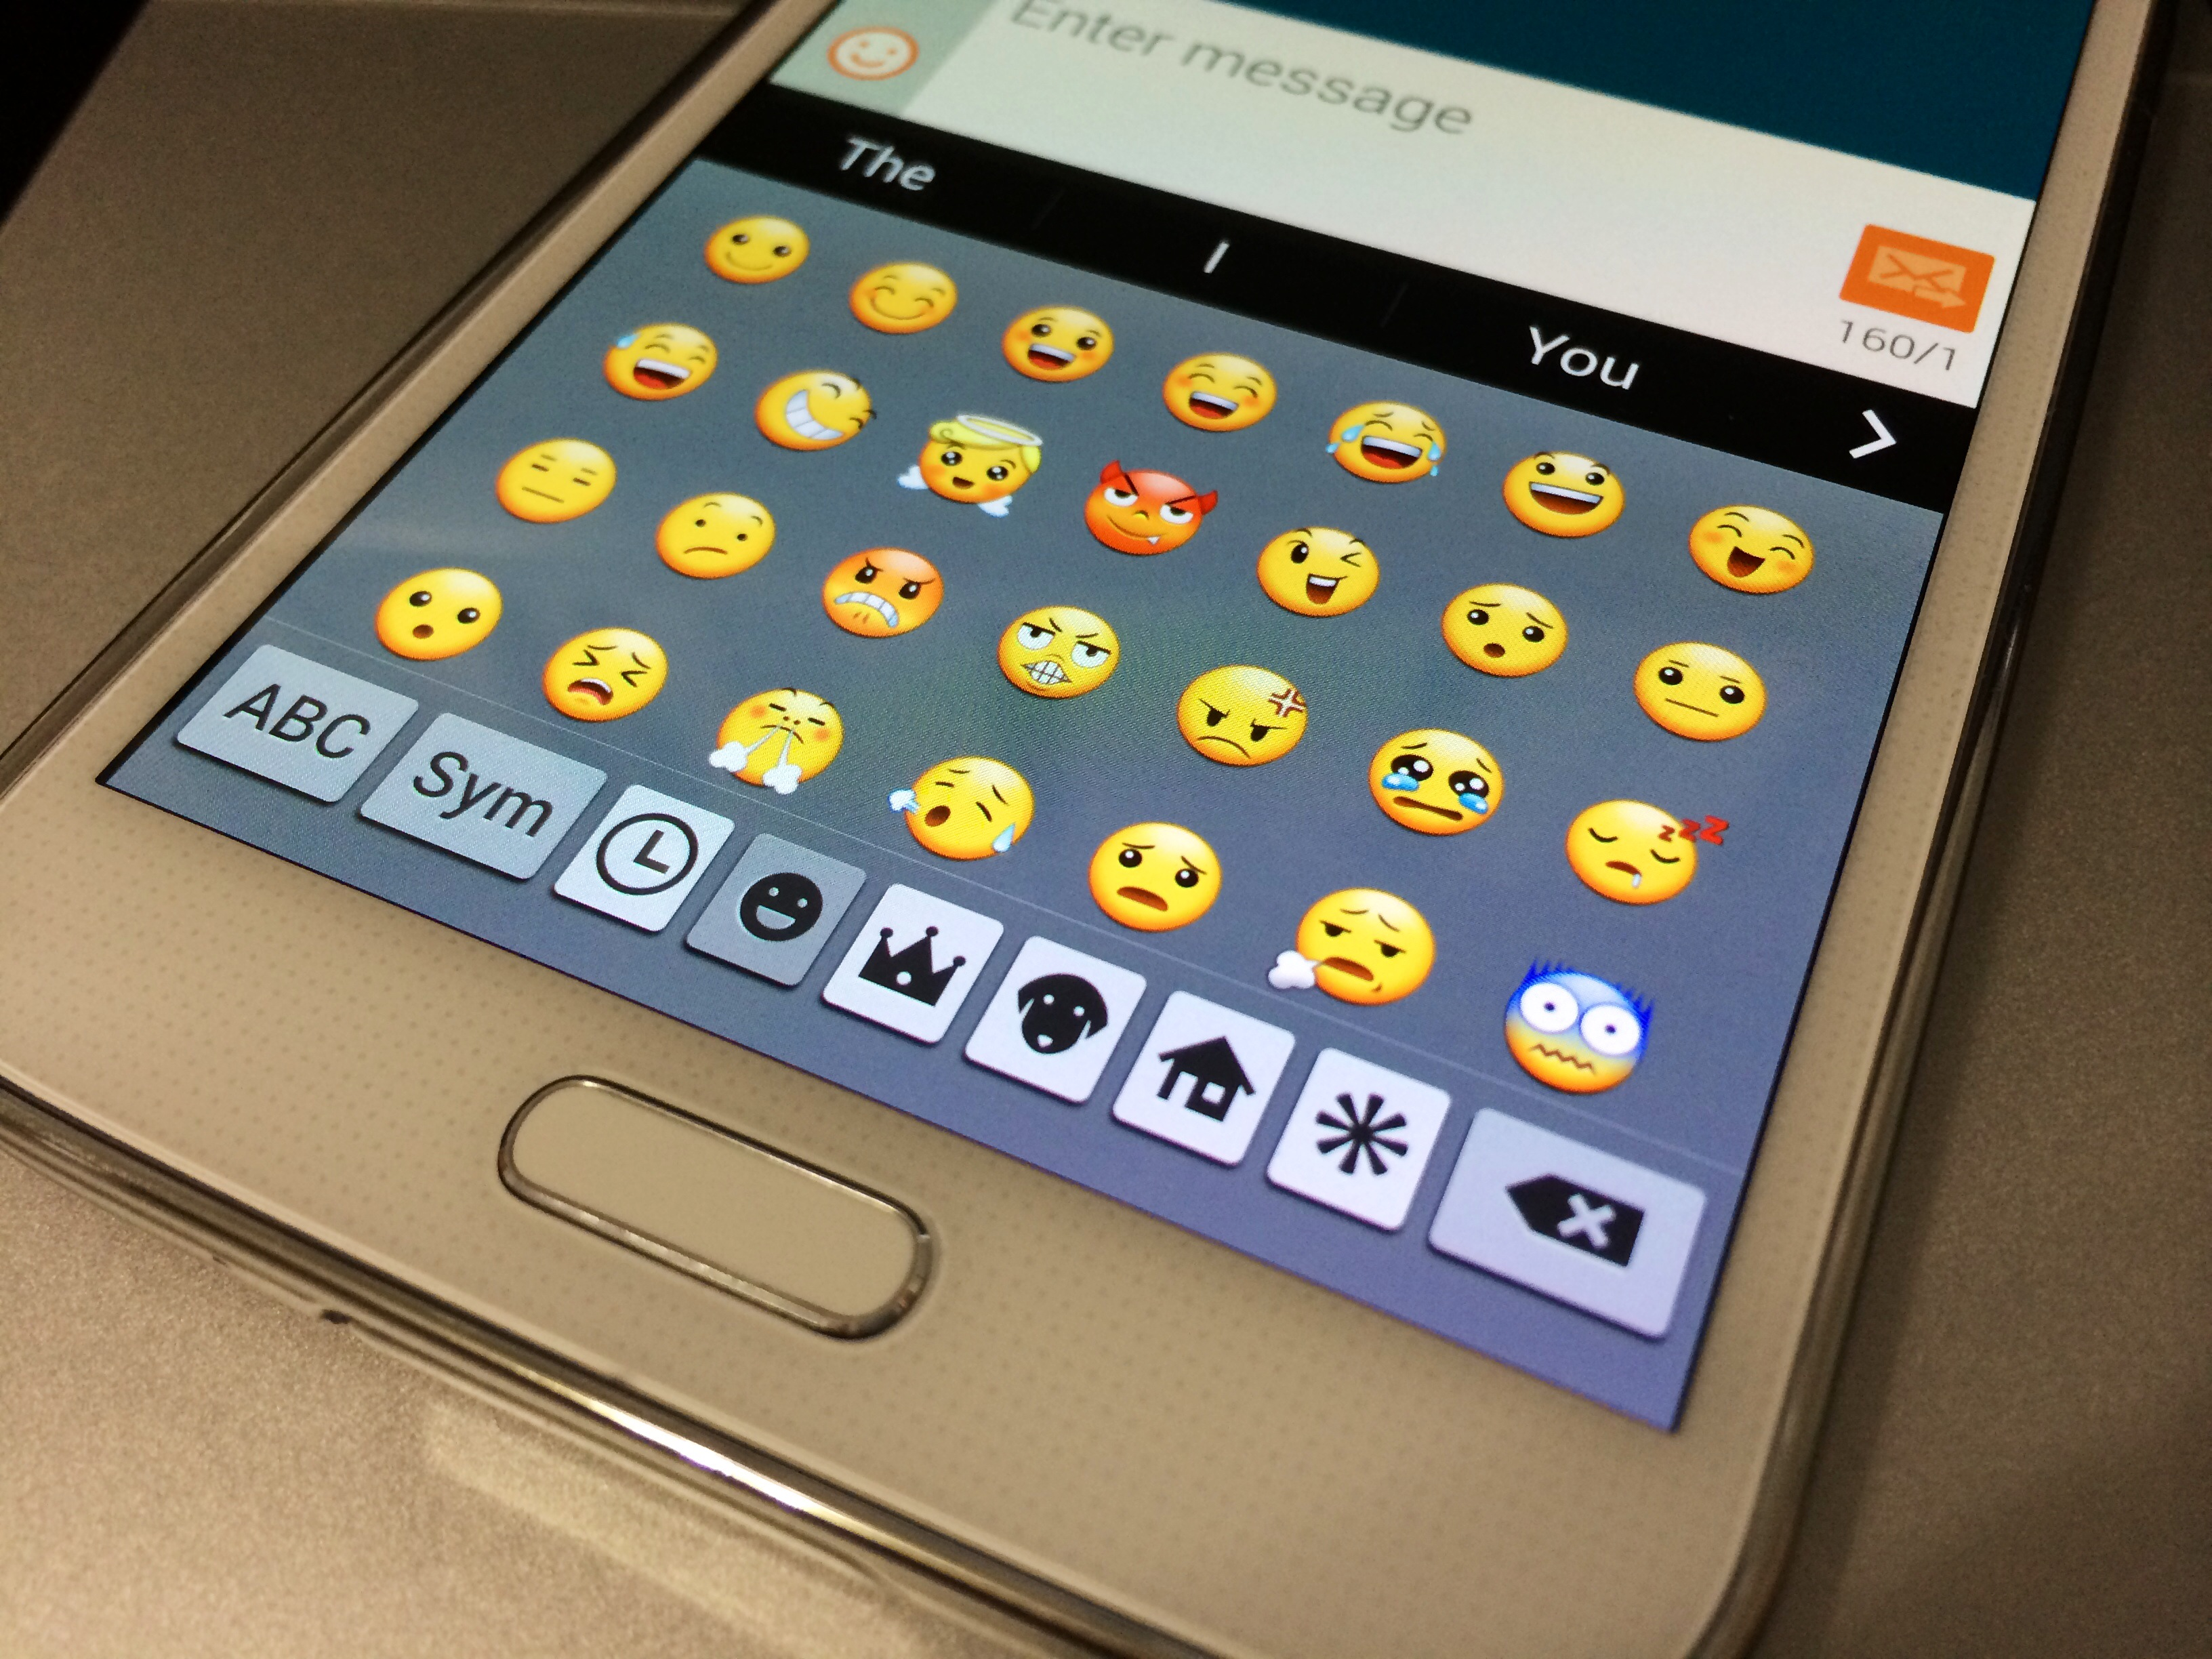 How to use emoji on the galaxy s5 galaxy note 3 galaxy s4 heres how to use the emoji galaxy s5 keyboard which also lets you use emoji buycottarizona Images